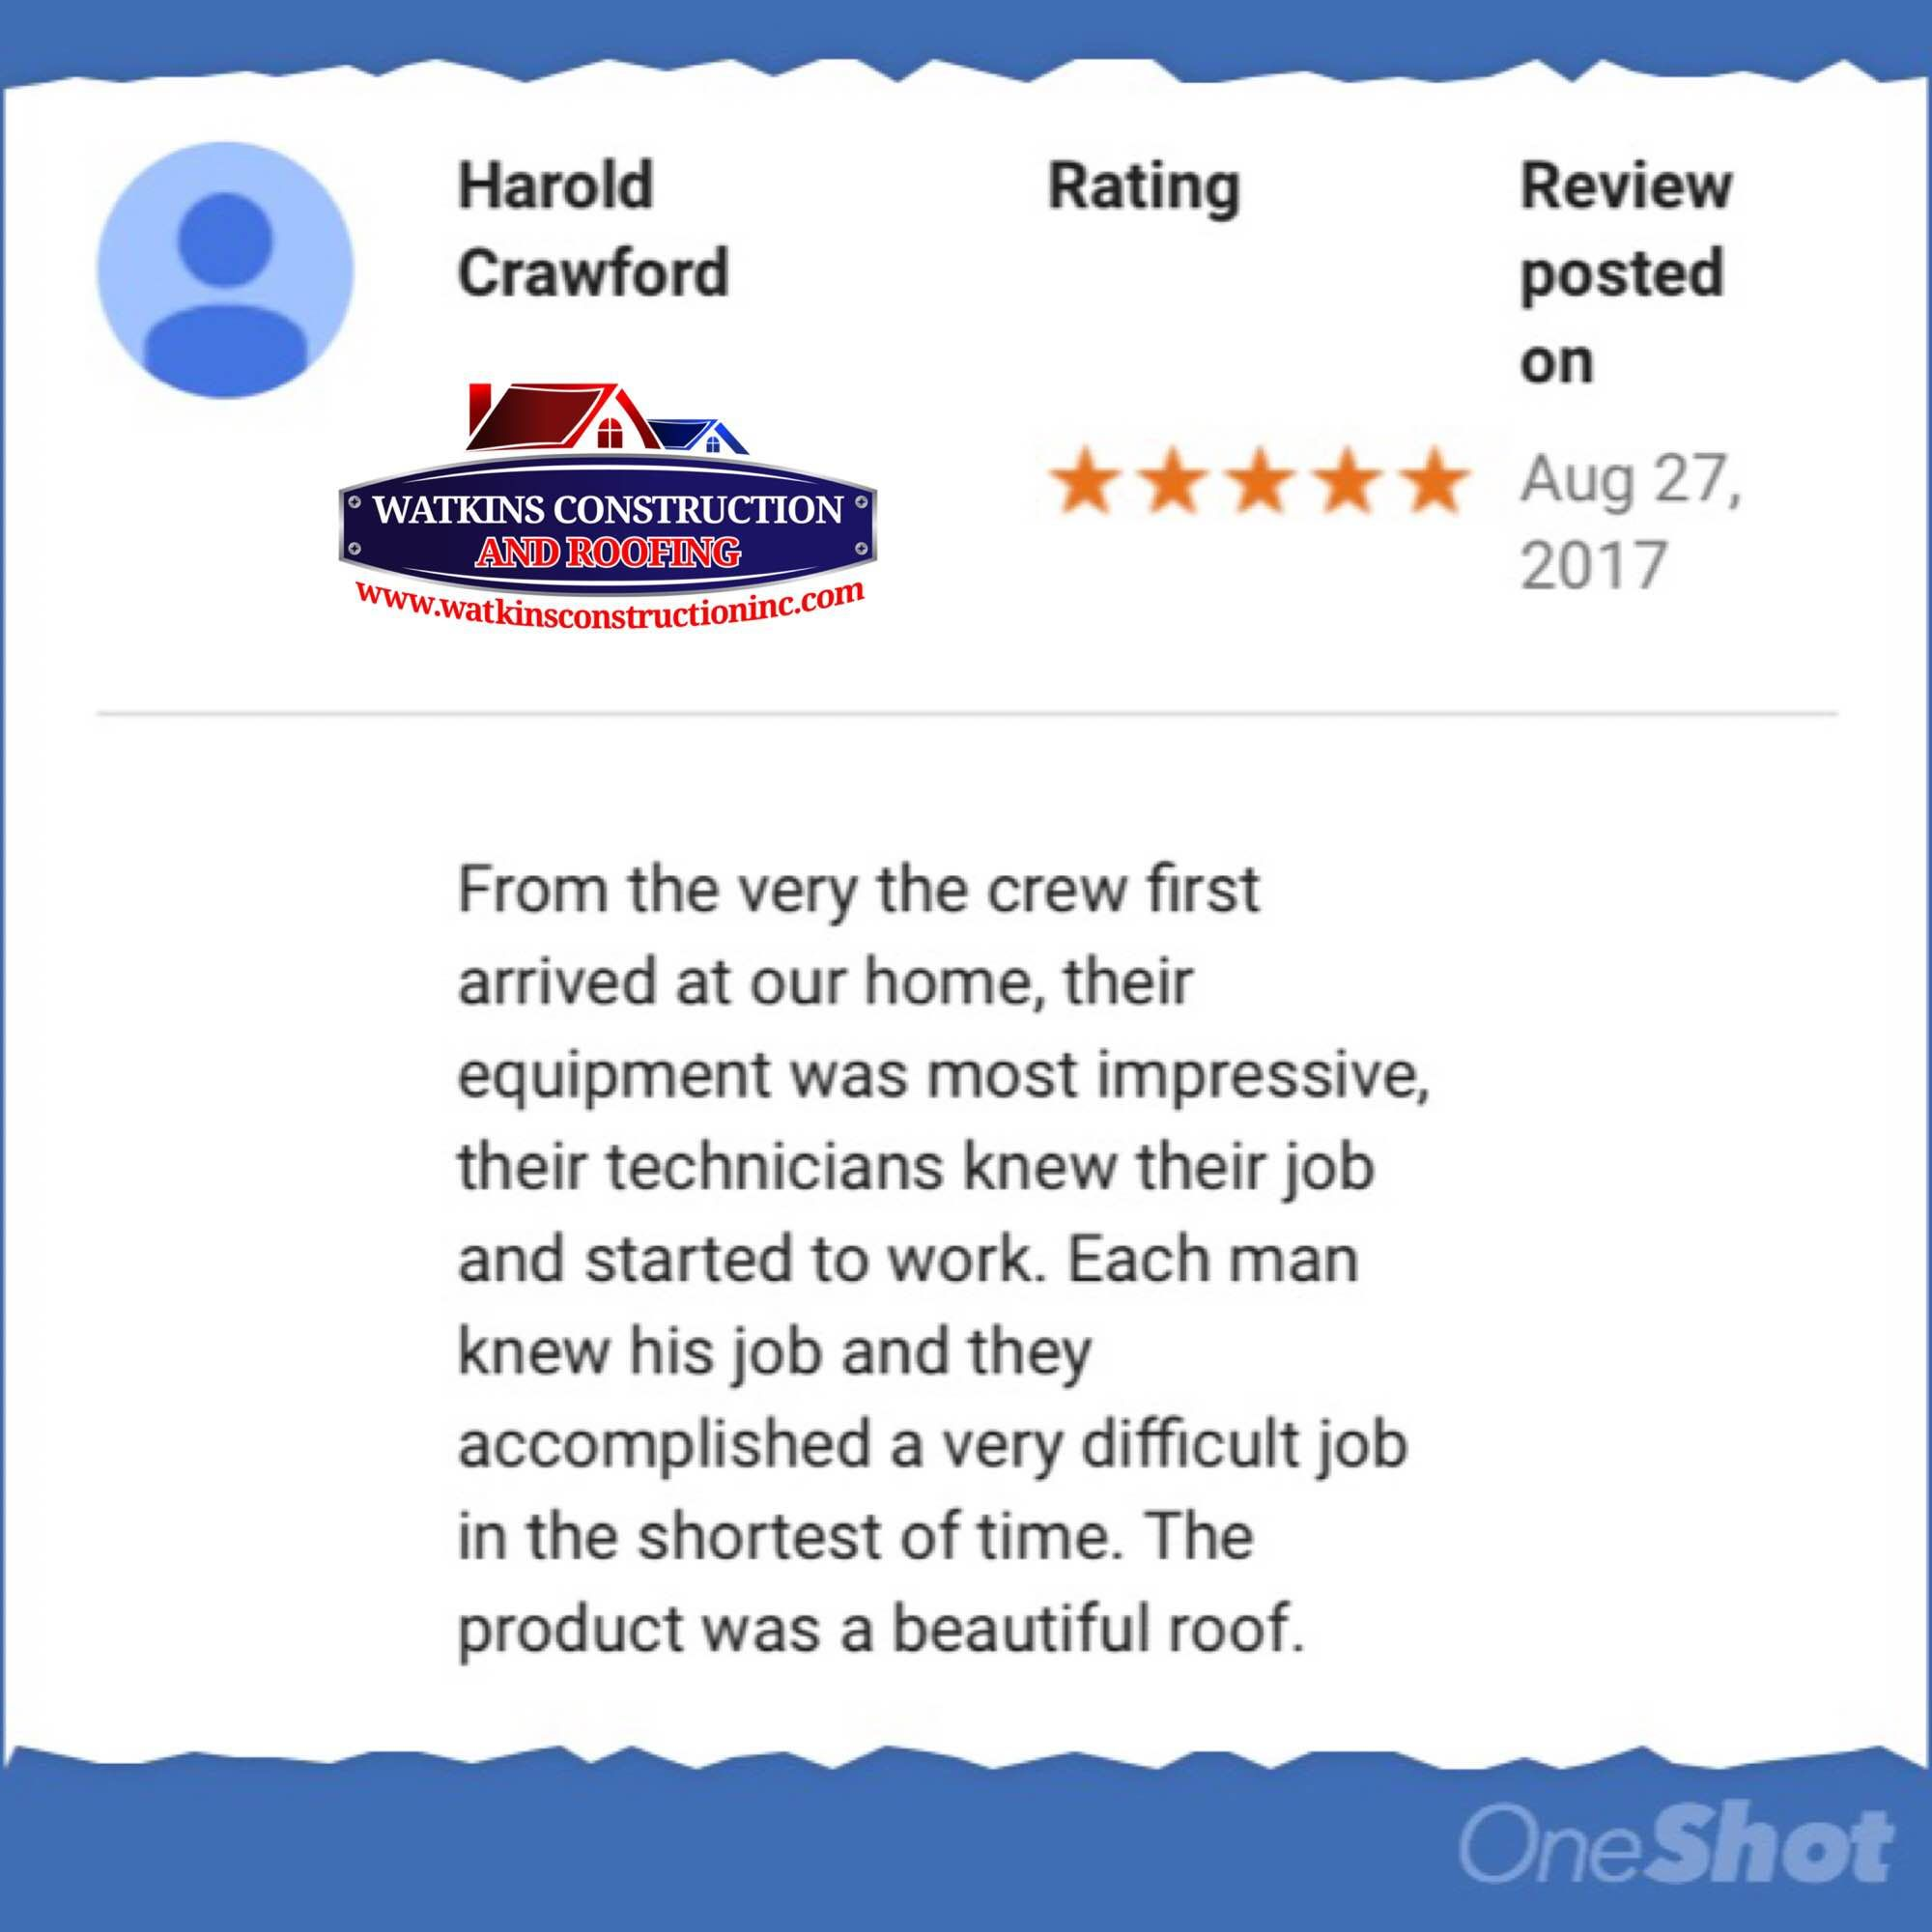 CHECK OUT OUR LATEST REVIEW! www.watkinsconstructioninc